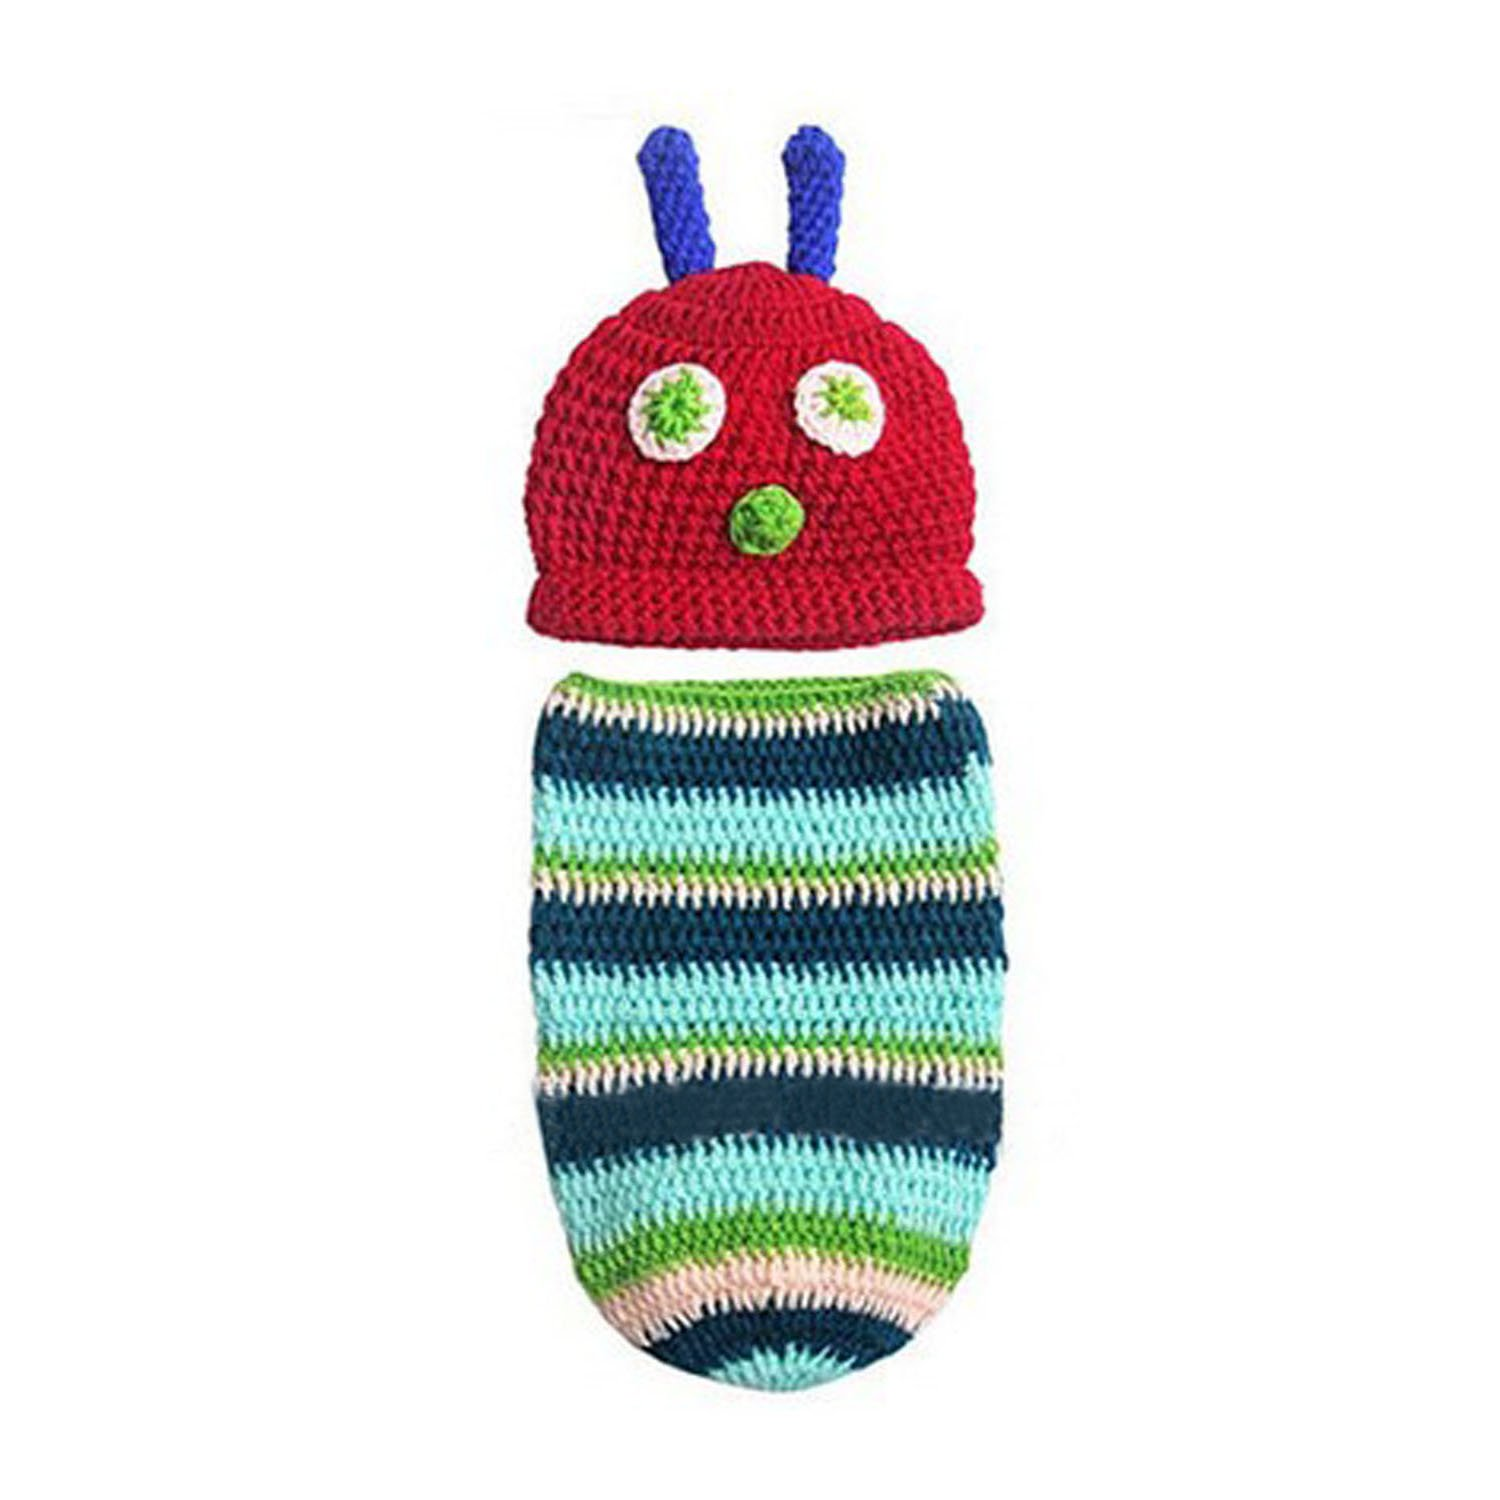 Aniwon Baby Photo Prop Cartoon Caterpillar Crochet Photography Costume Outfits 15Z7L015Y8YT229LMG53A